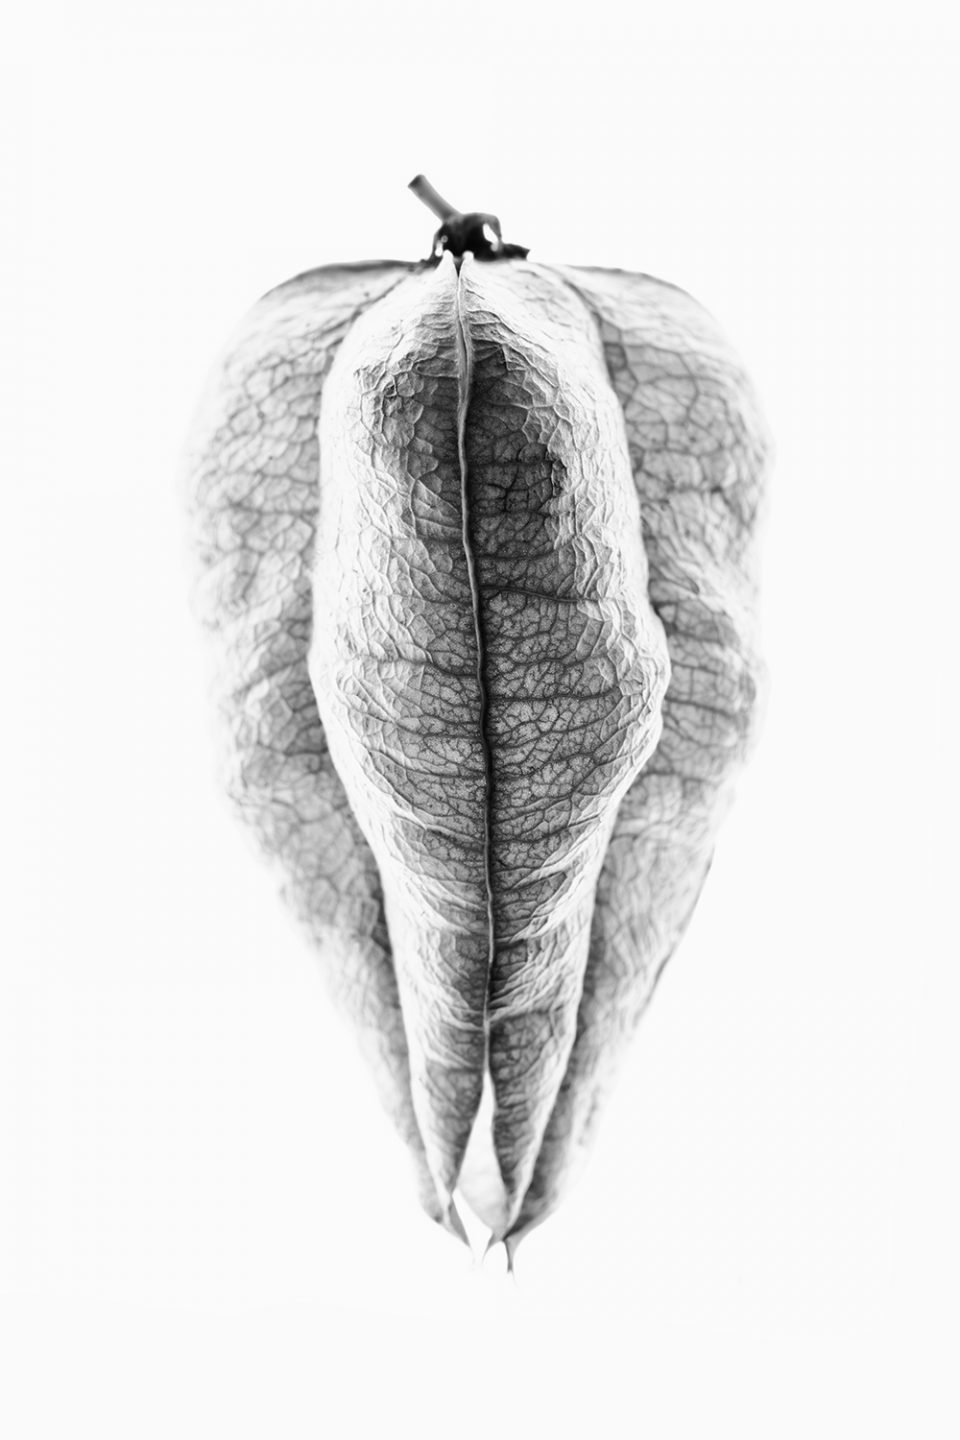 Black and white photograph of the seed pod of the Goldenrain Tree